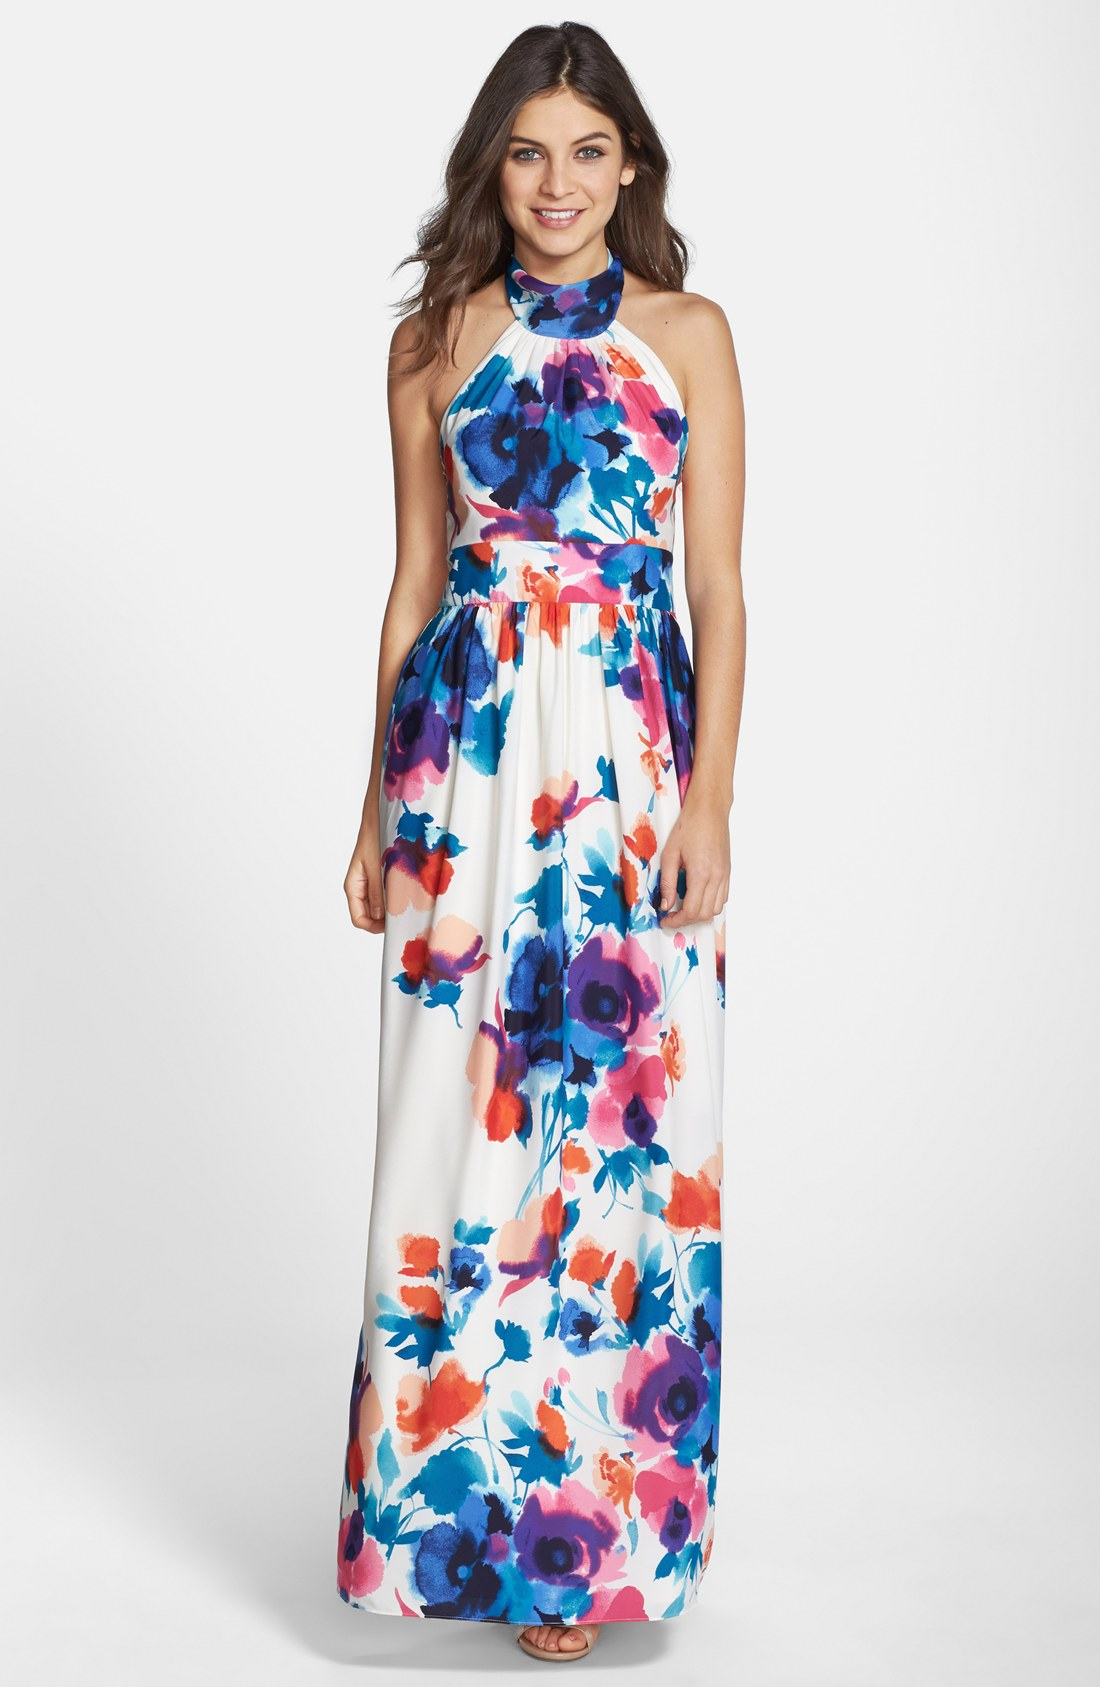 Another halter-neck maxi dress